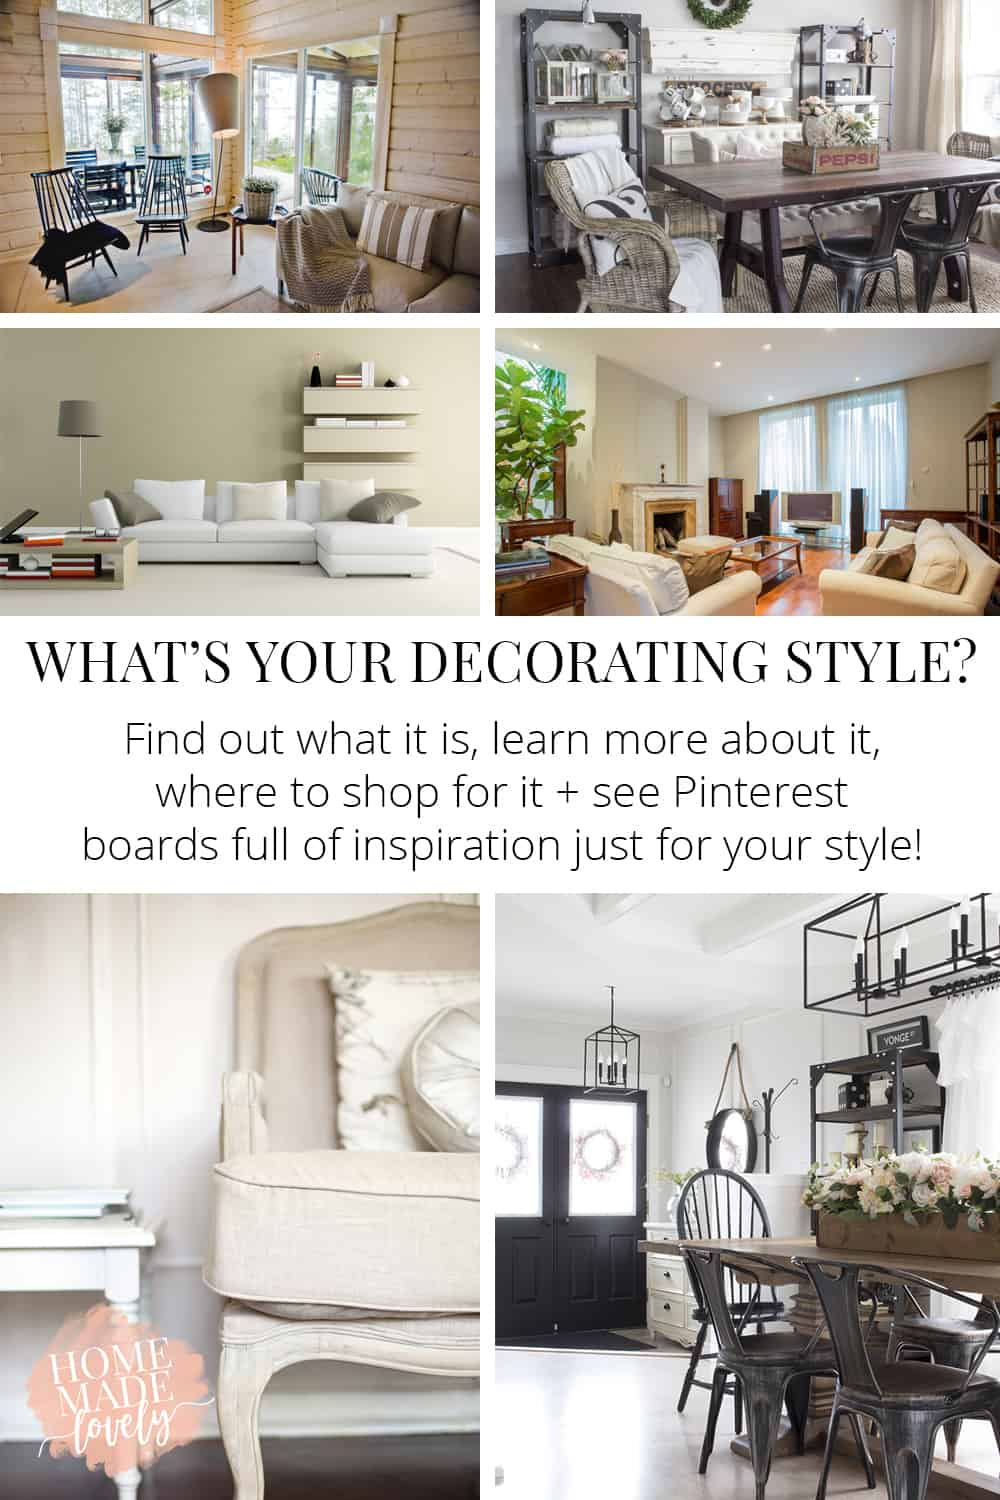 Decorating styles defined, find your decorating style, where to shop for you decorating style and links to decorating style Pinterest boards for more ideas!